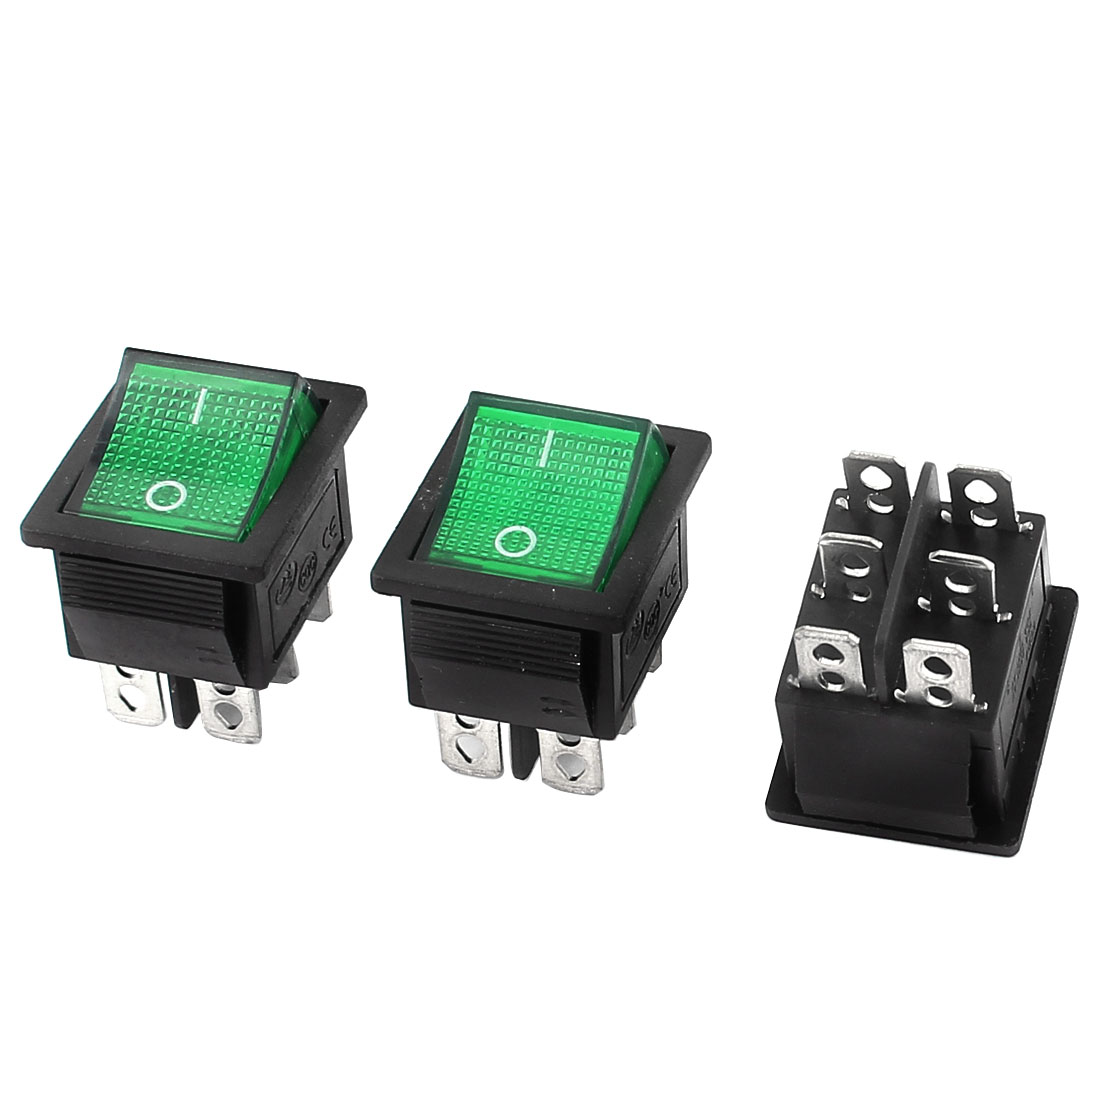 3 Pcs AC 125V 20A/250V 15A Green Light Illuminated 6 Pin DPDT ON/OFF Snap in Boat Rocker Switch